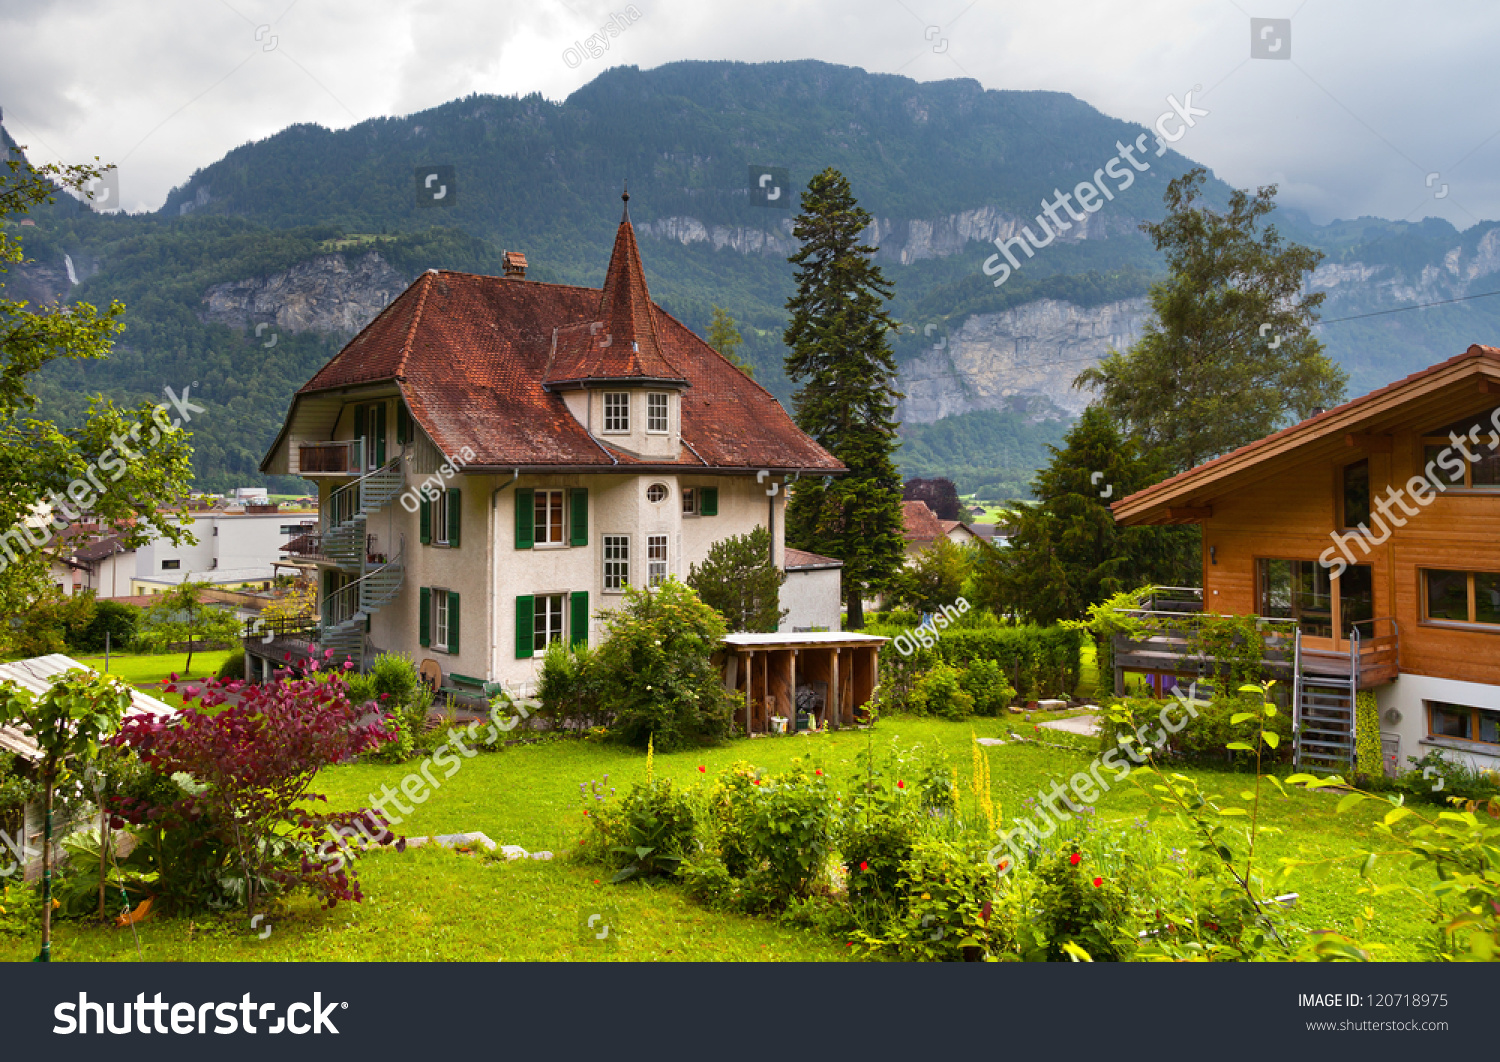 The Traditional Wooden Swiss Houses With A Garden